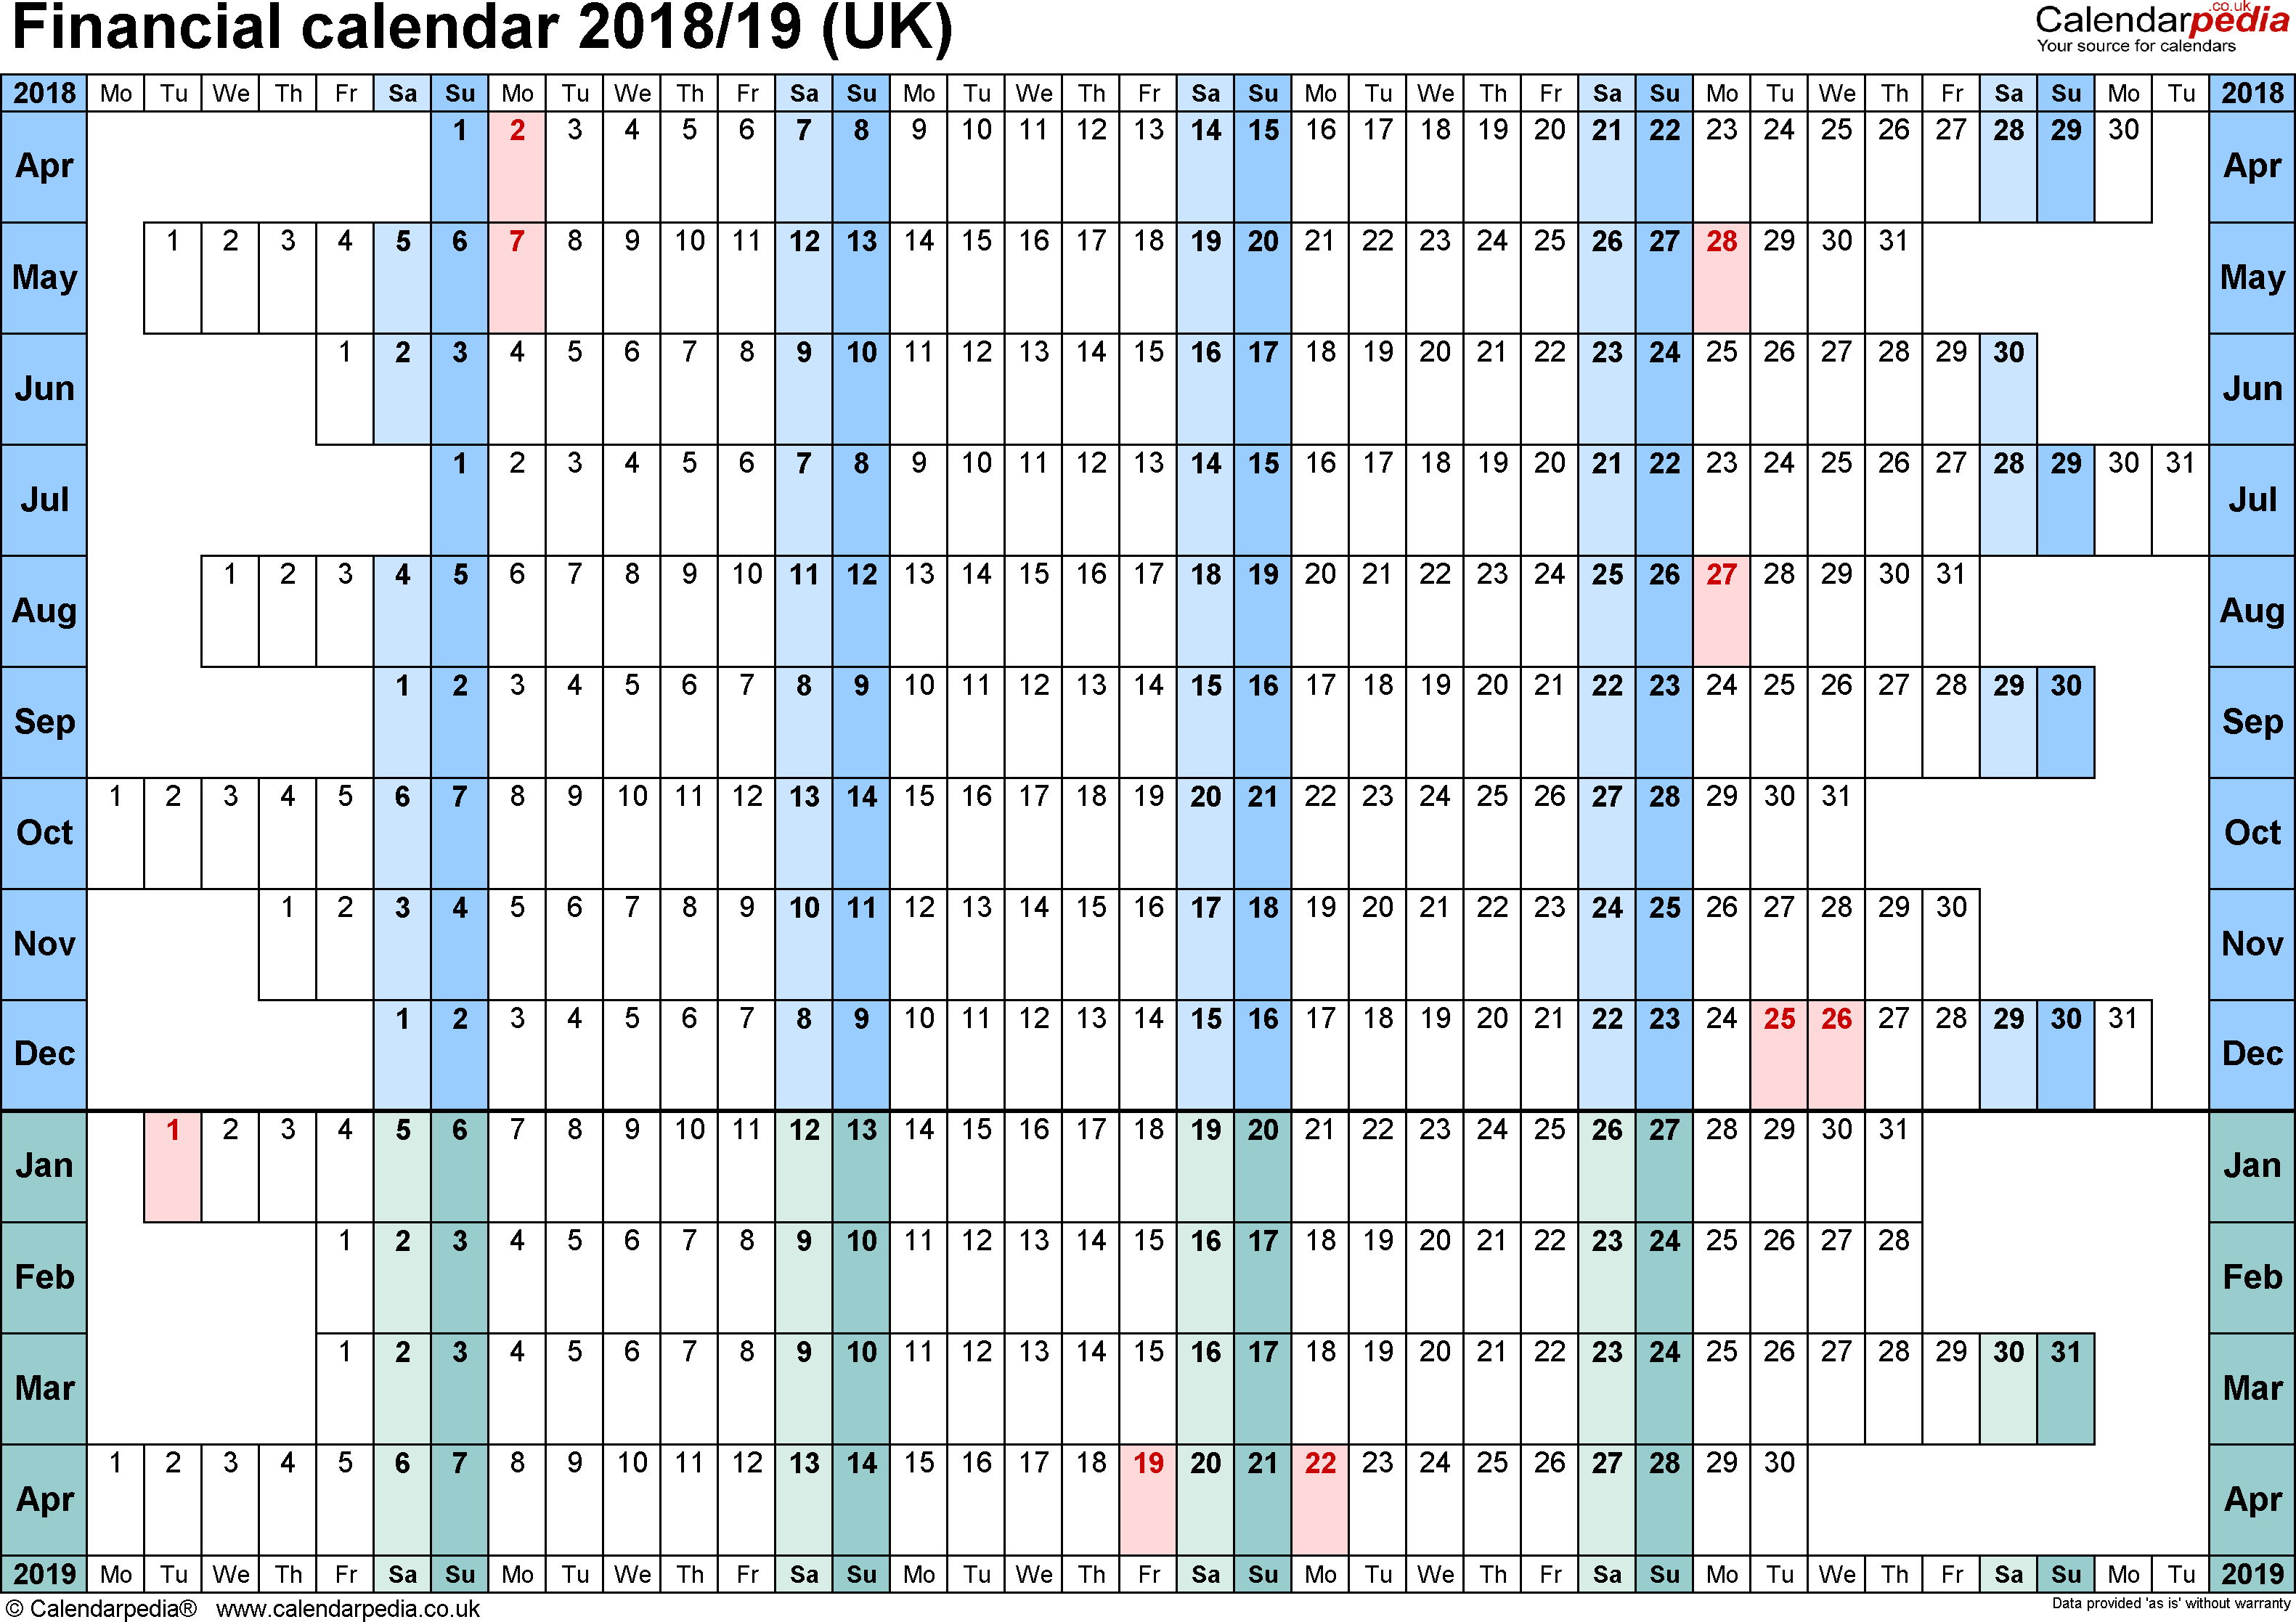 Calendar 2019 Tax Year With Financial Calendars 2018 19 UK In PDF Format